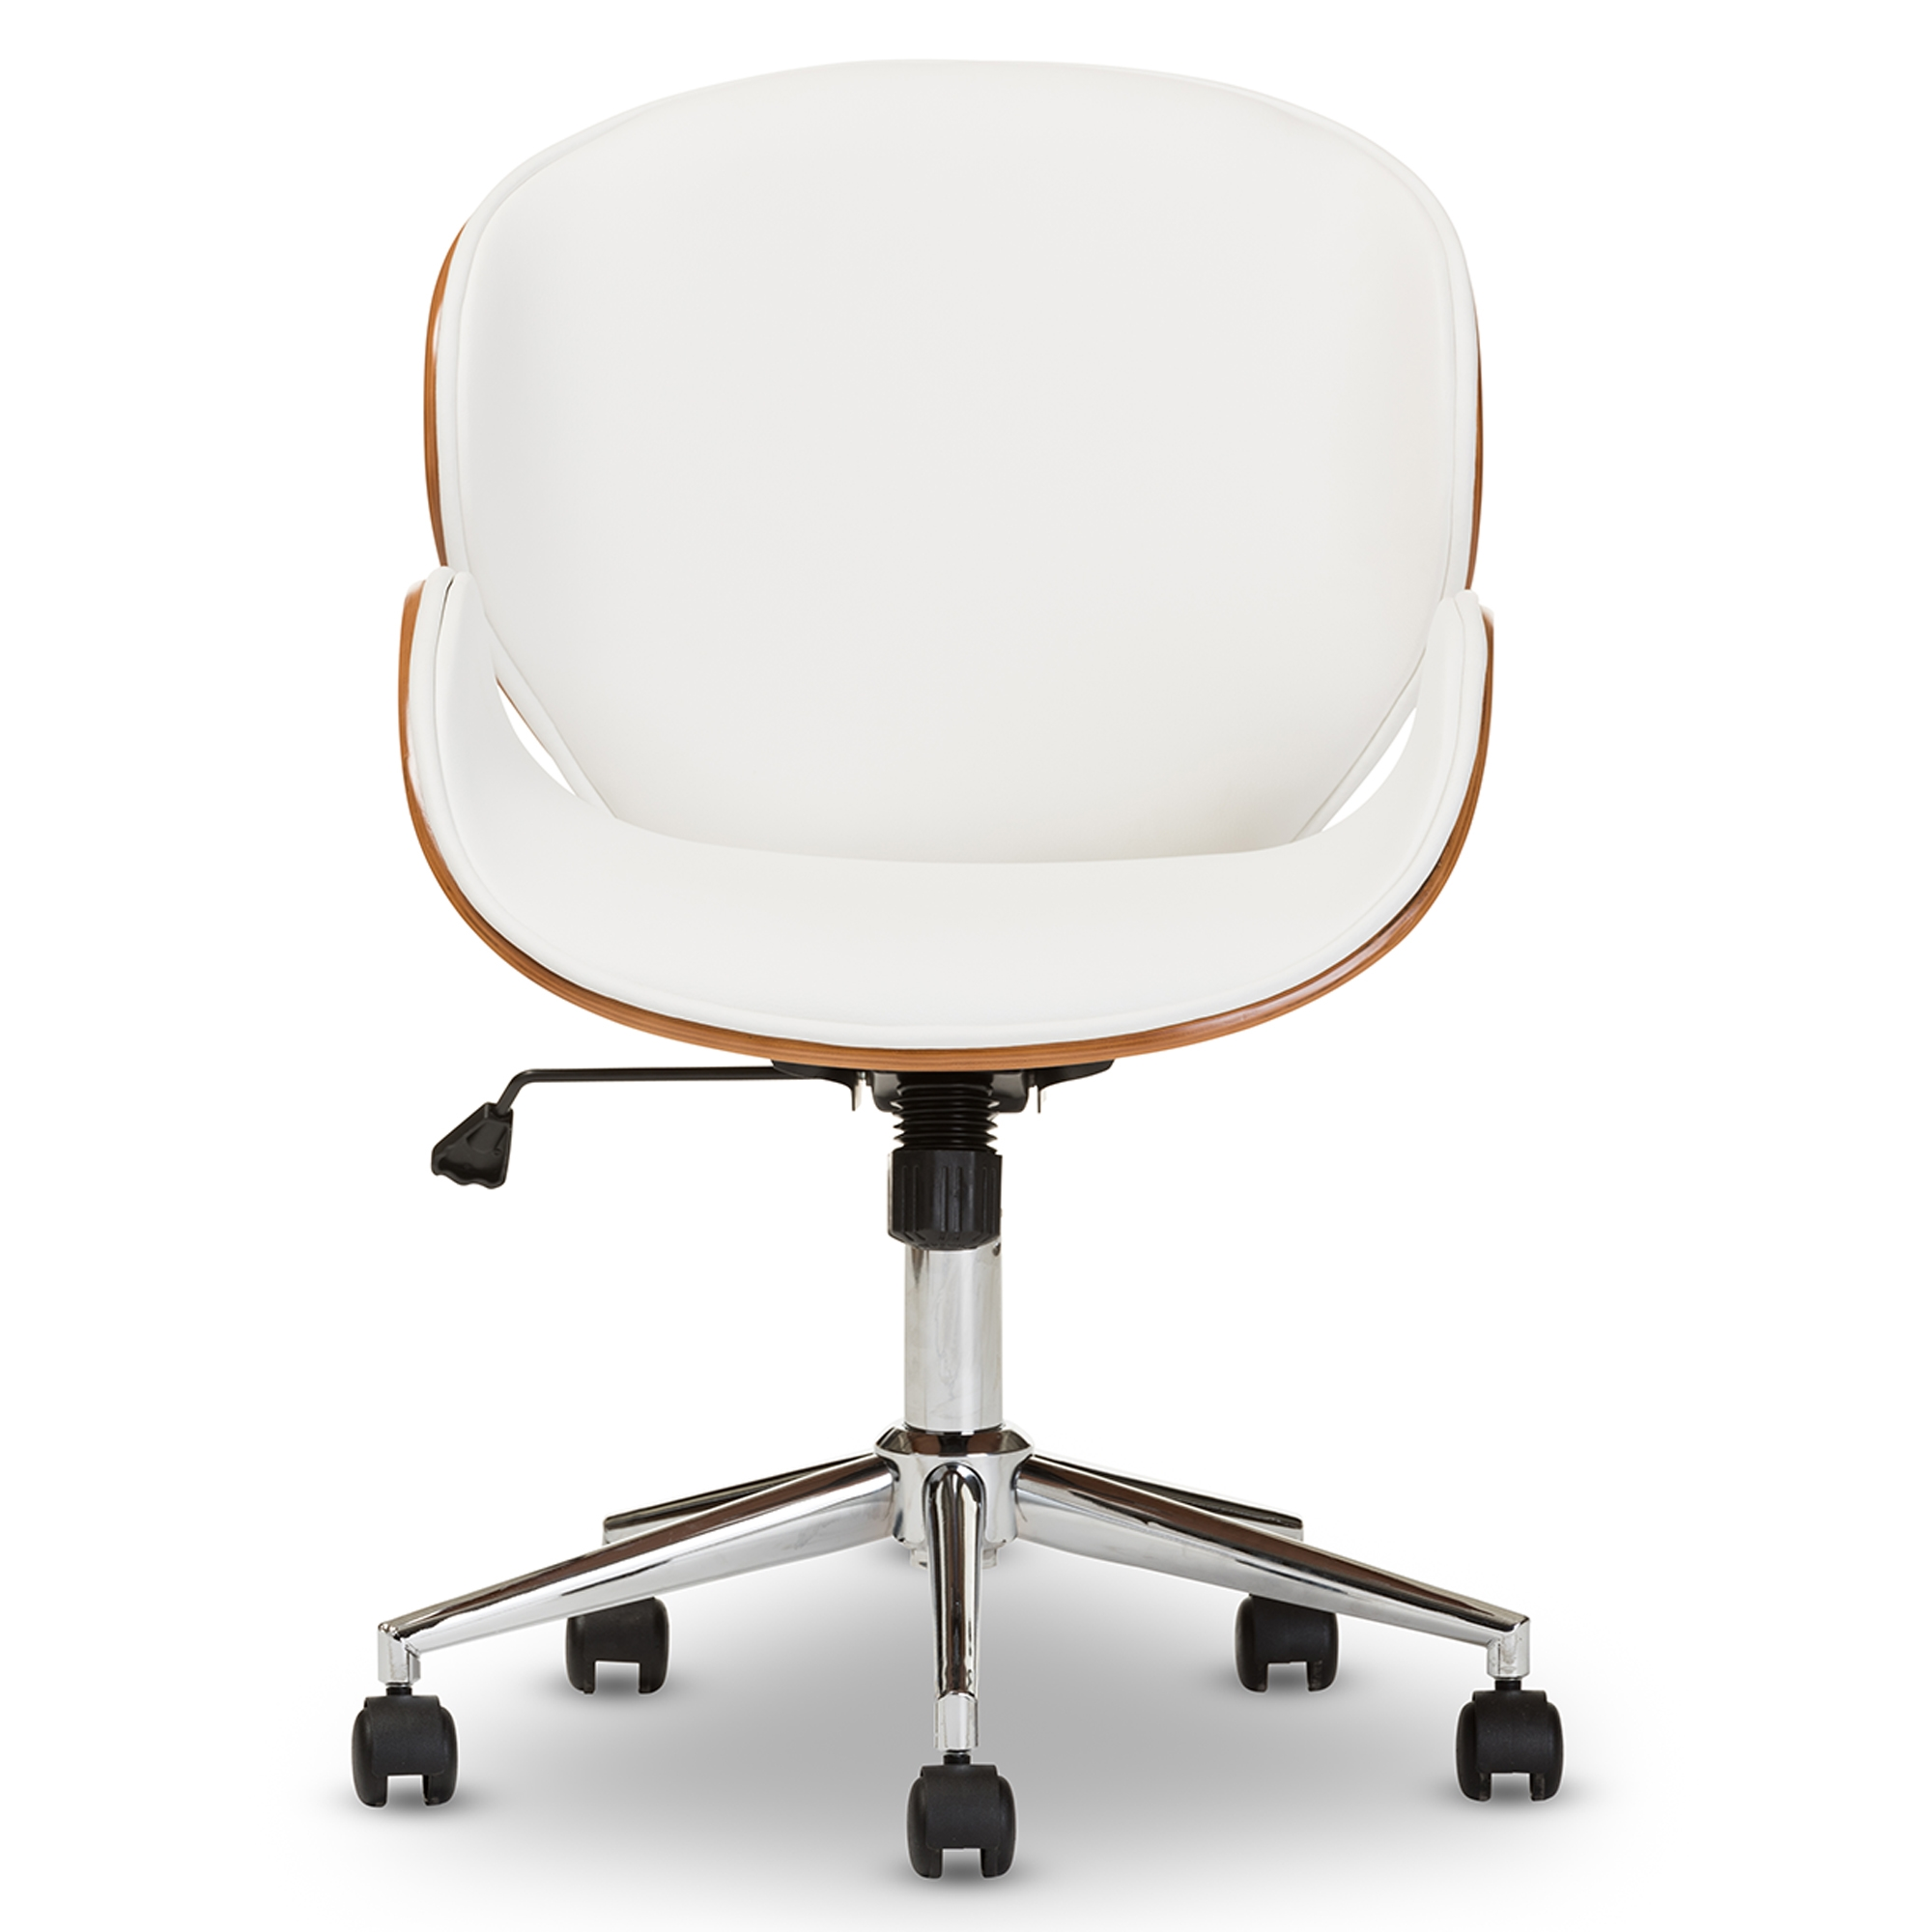 Home Office Furniture Chicago Furniture Clean Look For